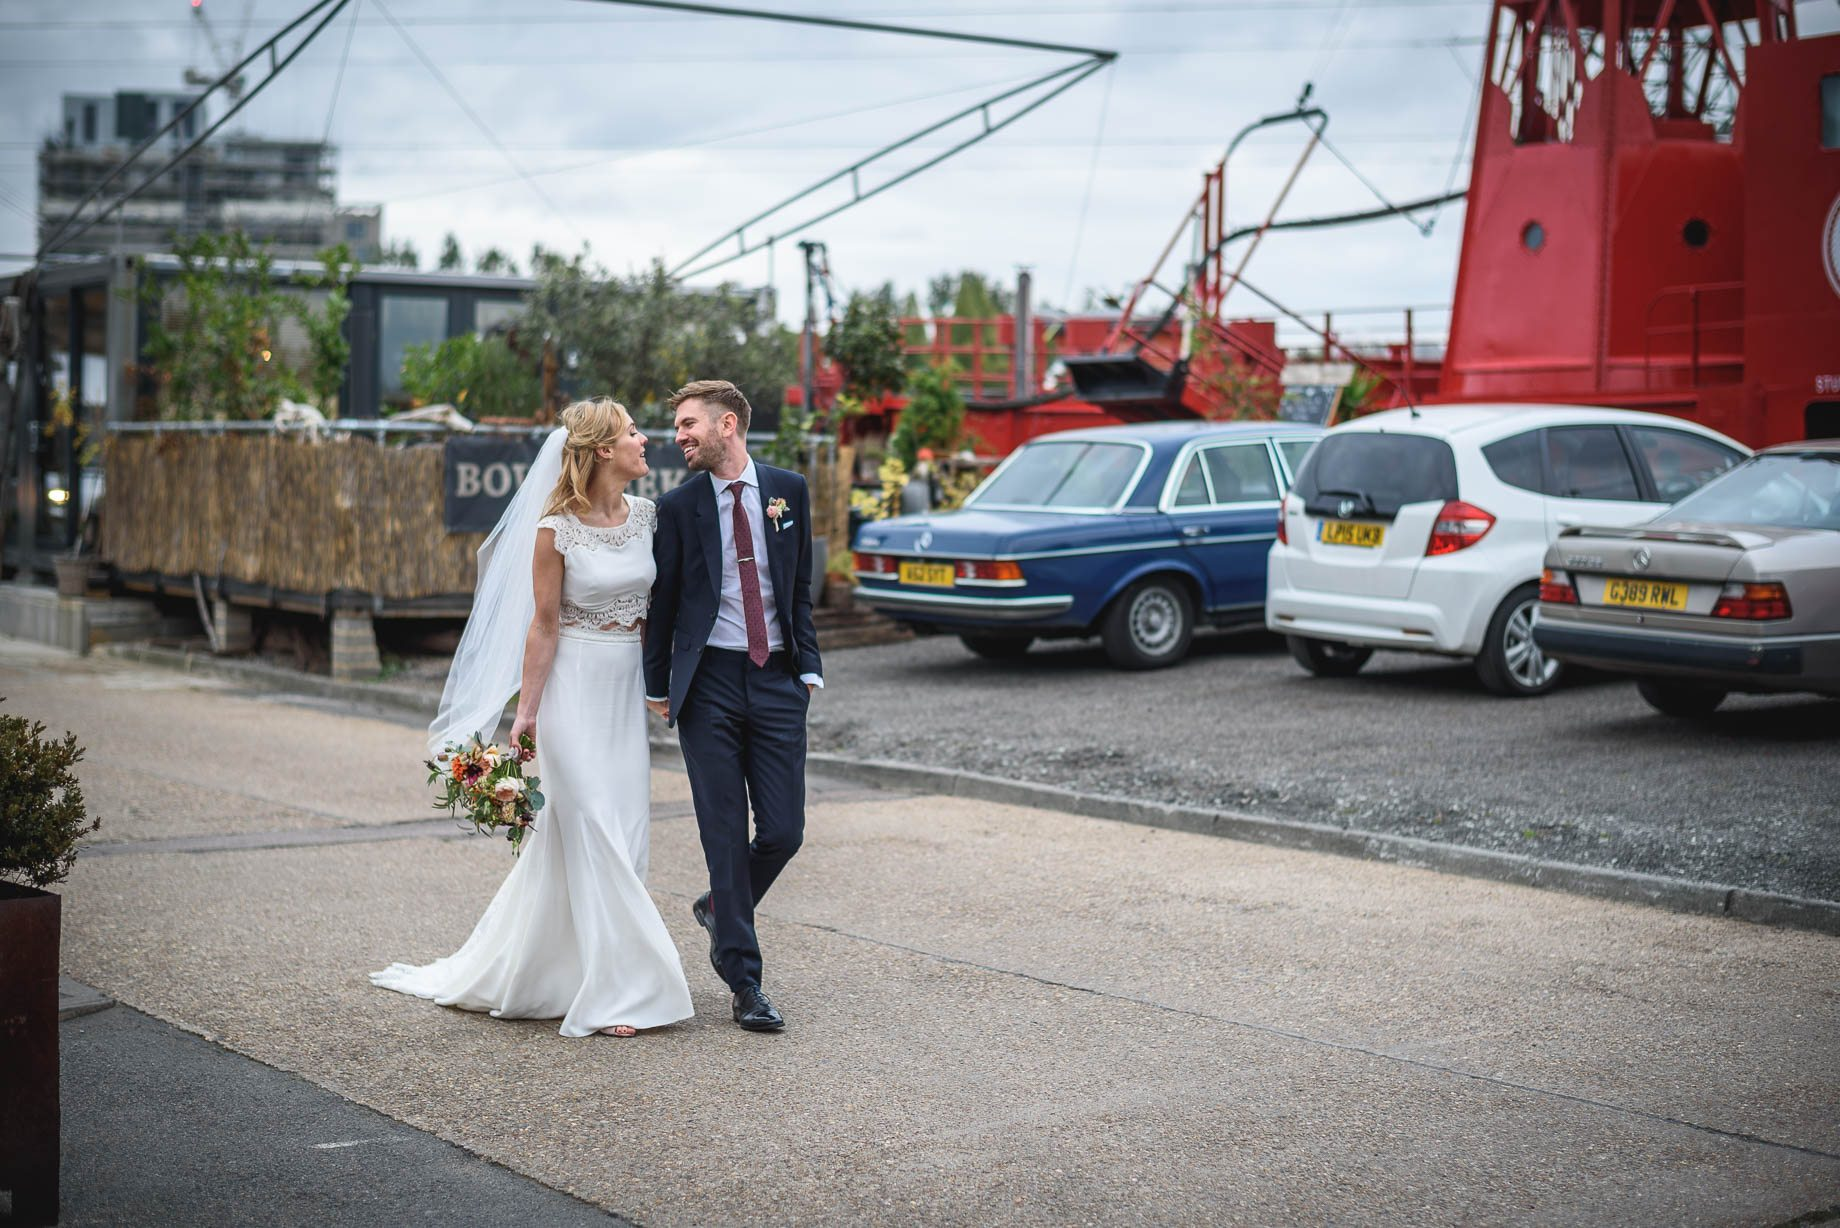 trinity-buoy-wharf-wedding-photography-guy-collier-photography-katie-and-james-119-of-213